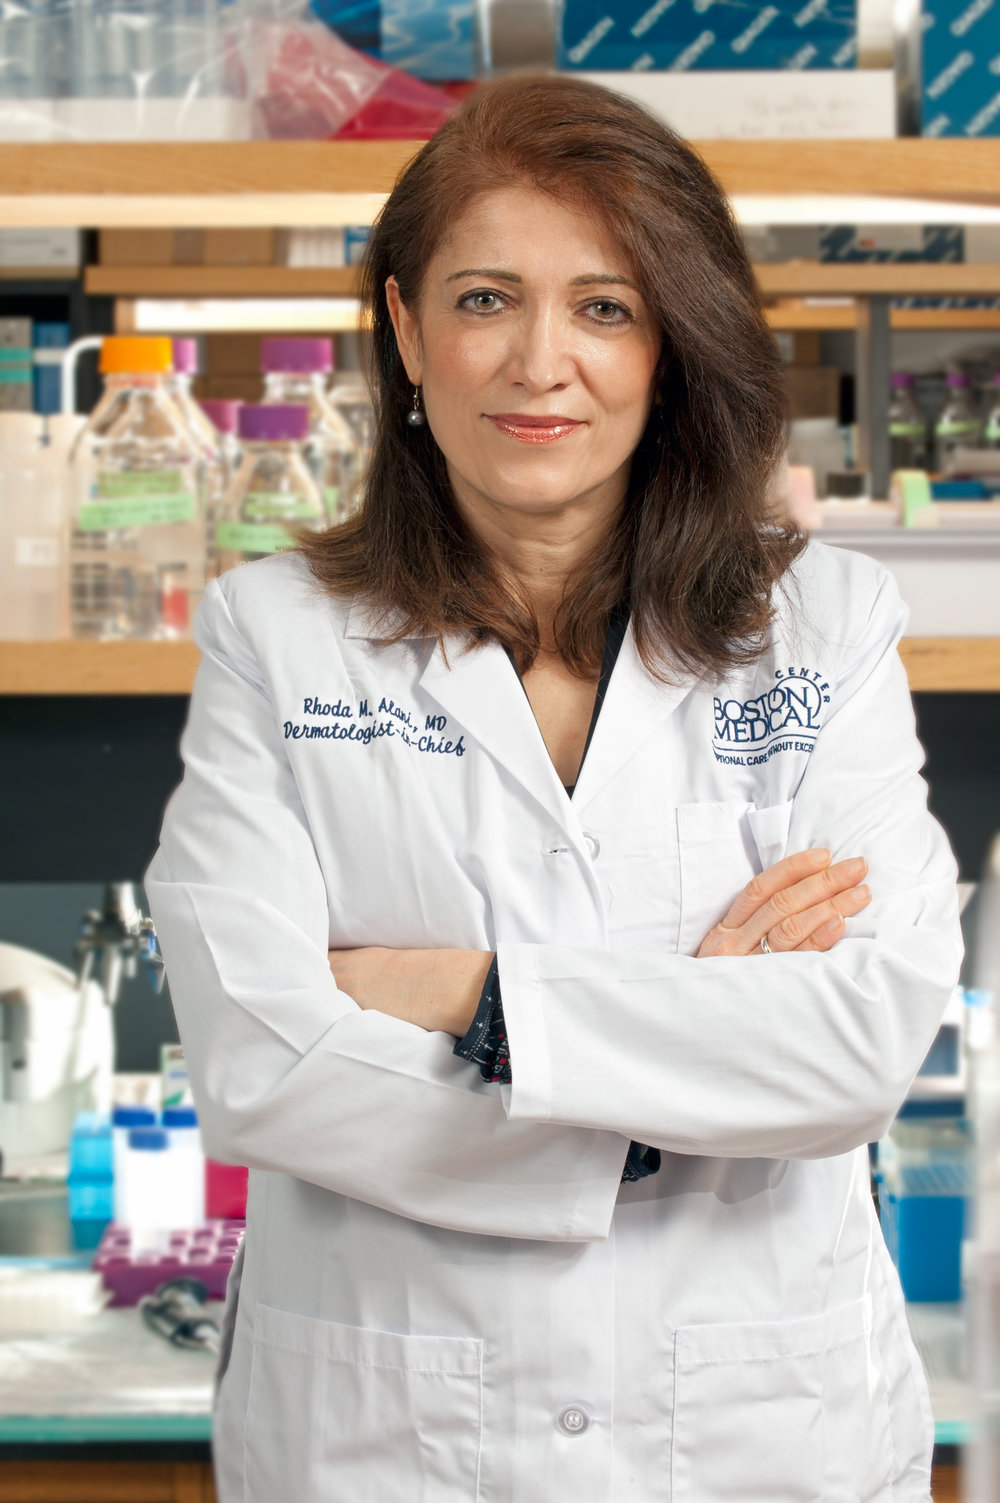 Rhoda M. Alani, MD, Chief, Dept. of Dermatology, BU School of Medicine